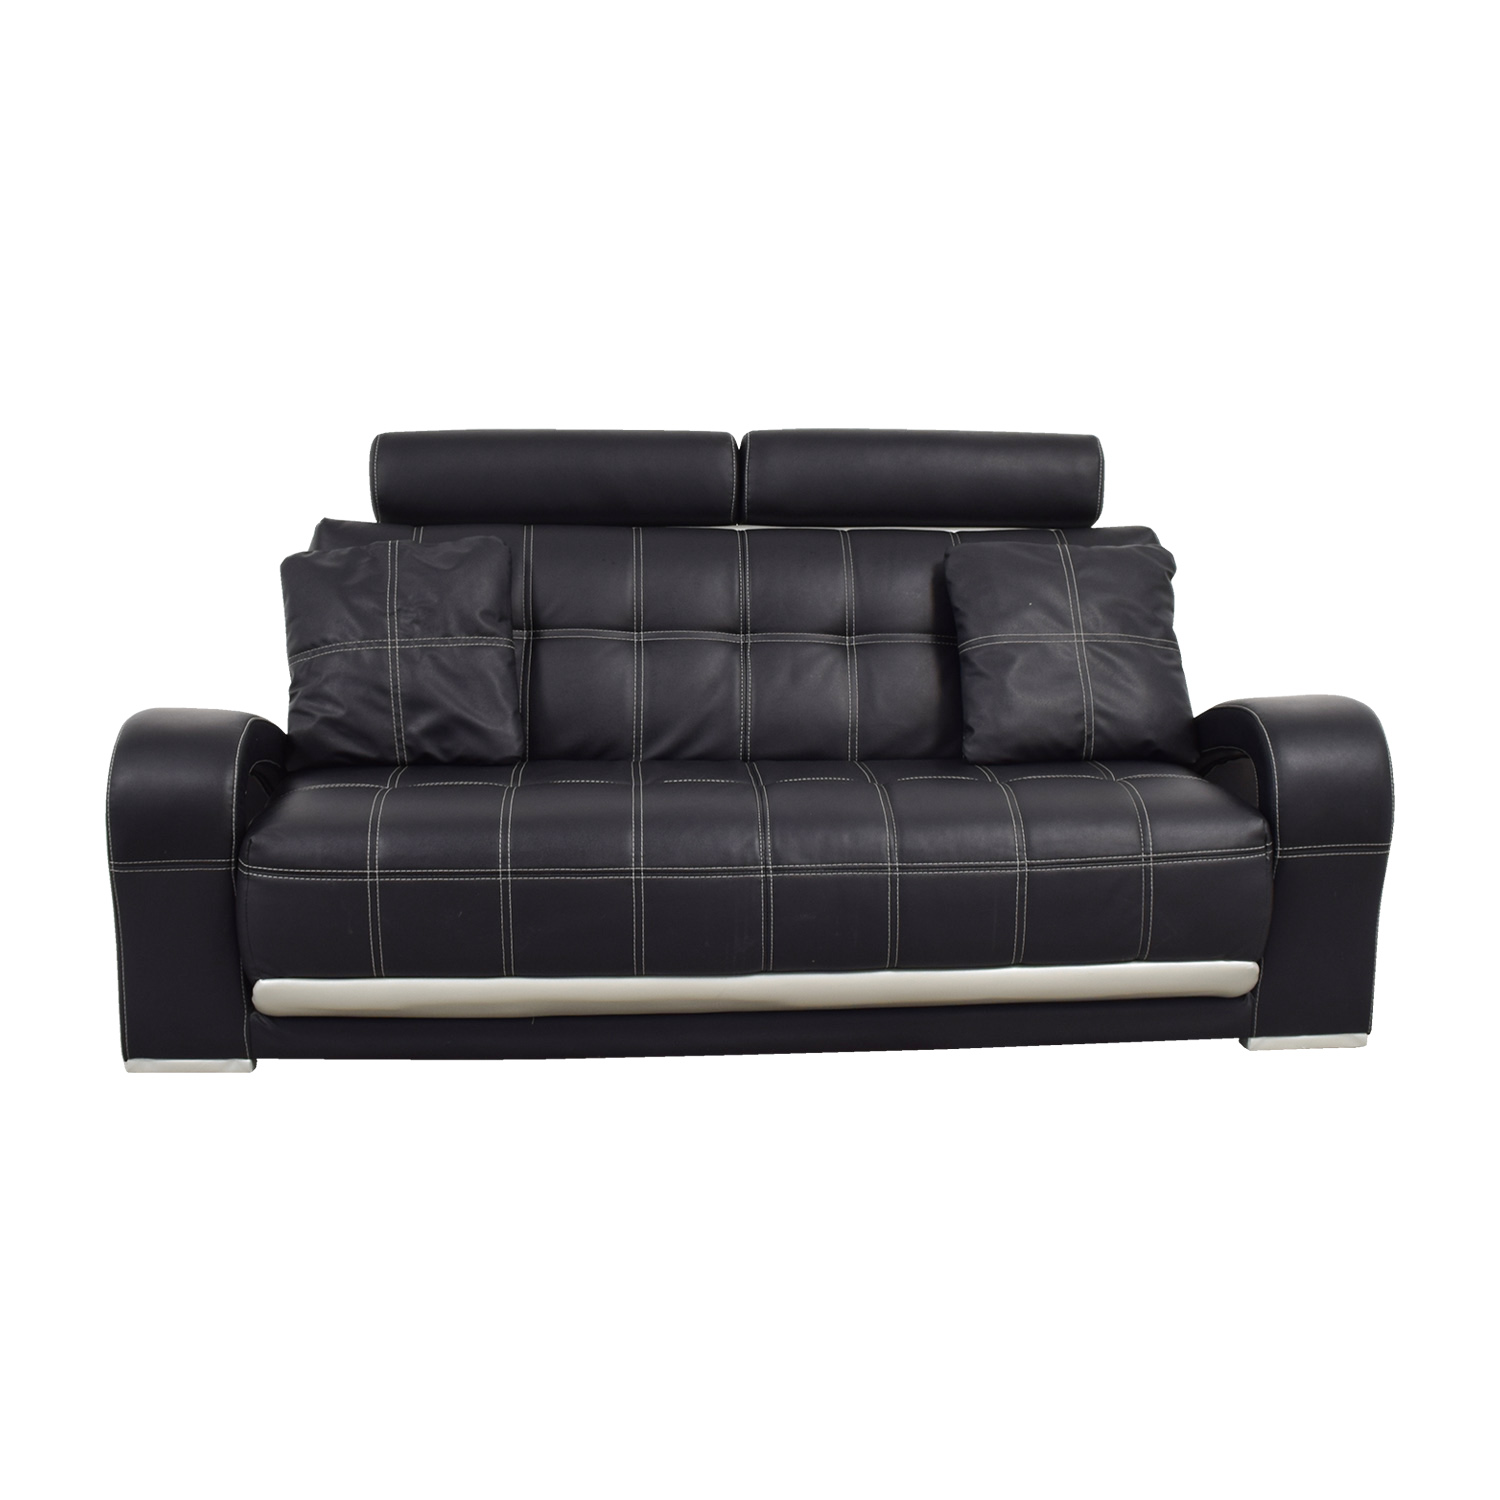 52 off black leather sofa with pillows sofas for Best pillows for leather couch